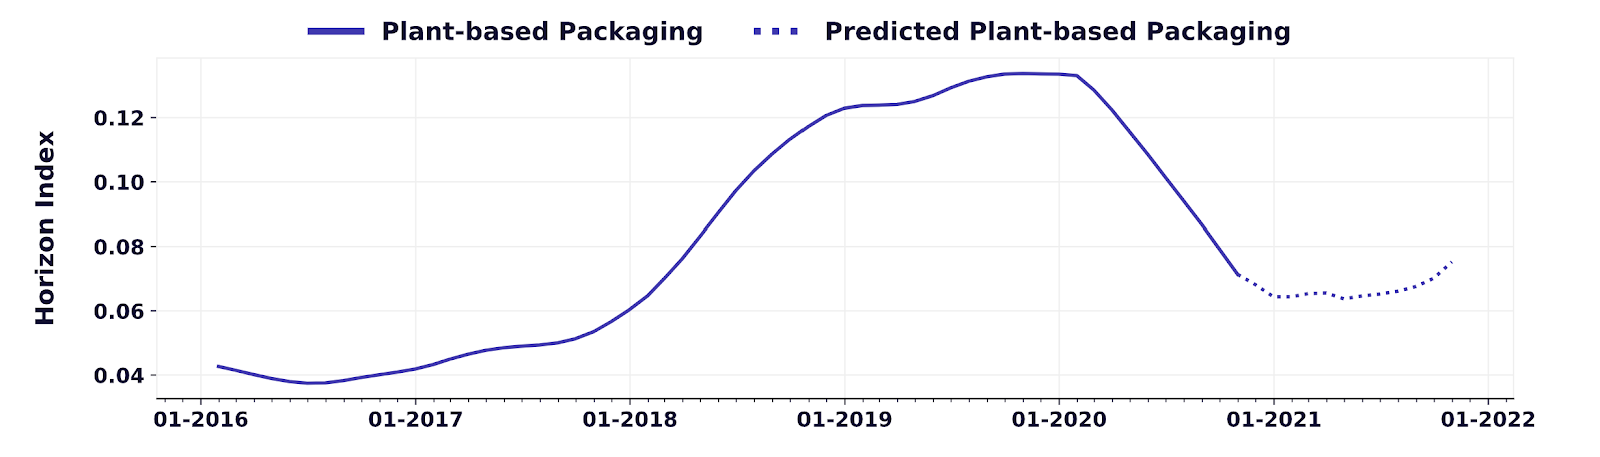 plant based packaging data and insights from Spoonshot platform